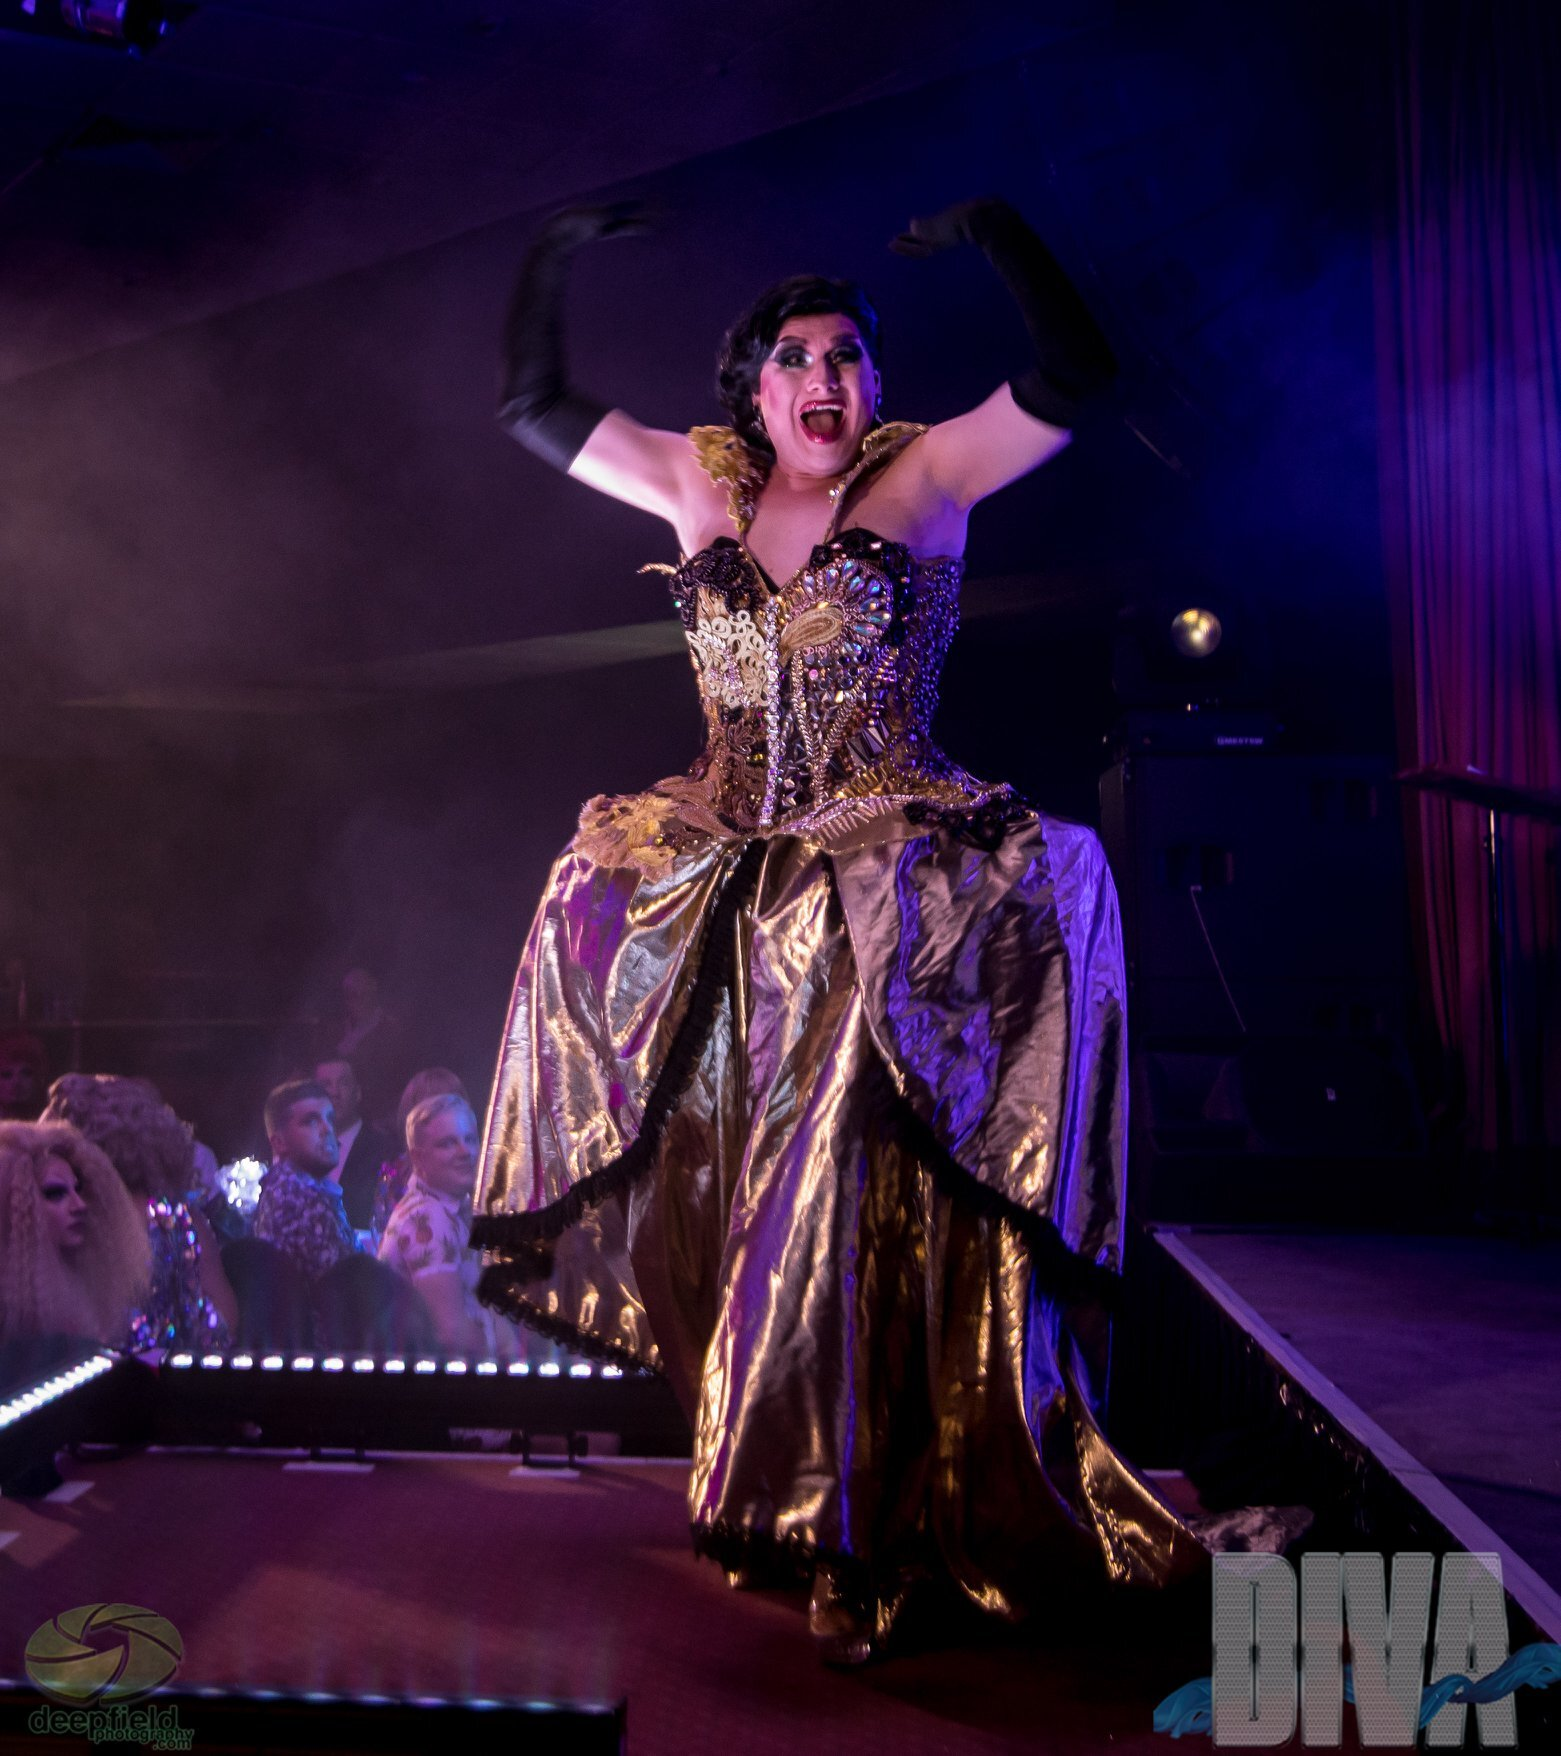 masqueerade-arq-sydney-show-of-the-year-favourite-charisma-belle-sia-tequila-coco-jumbo-diva-awards-sydney-drag-queen-royalty-best-hire-drag-race-australia-2.jpg